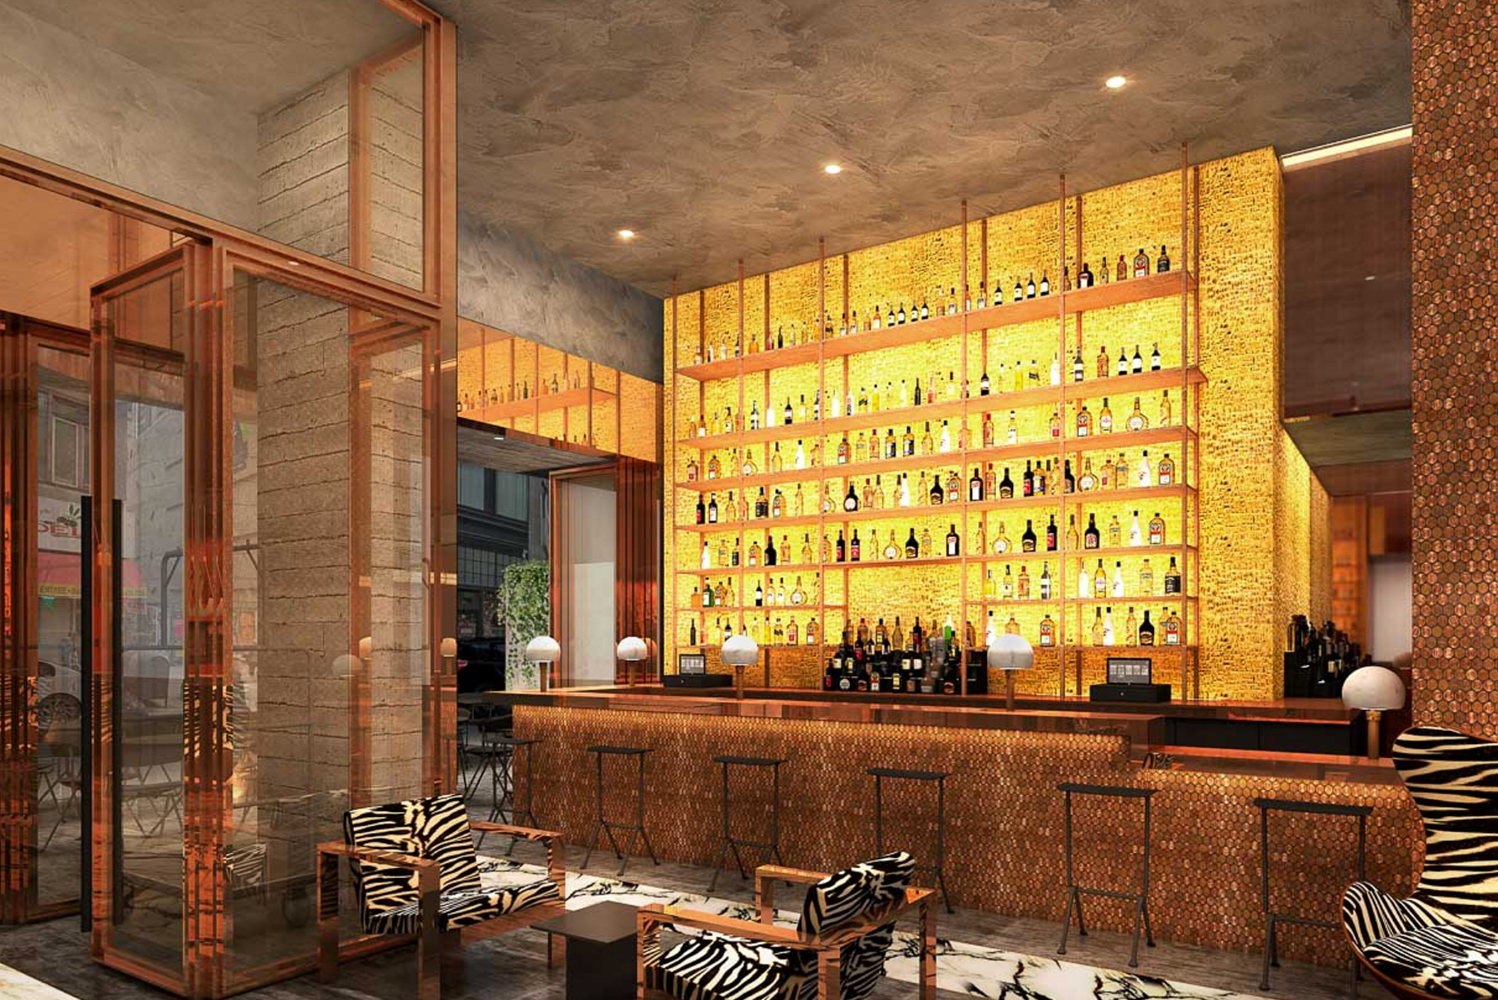 Inside, guests are greeted by the front desk on their right and the restaurant's bar on the left, a layout that intends to create a synergy between the bar and the reception desk.